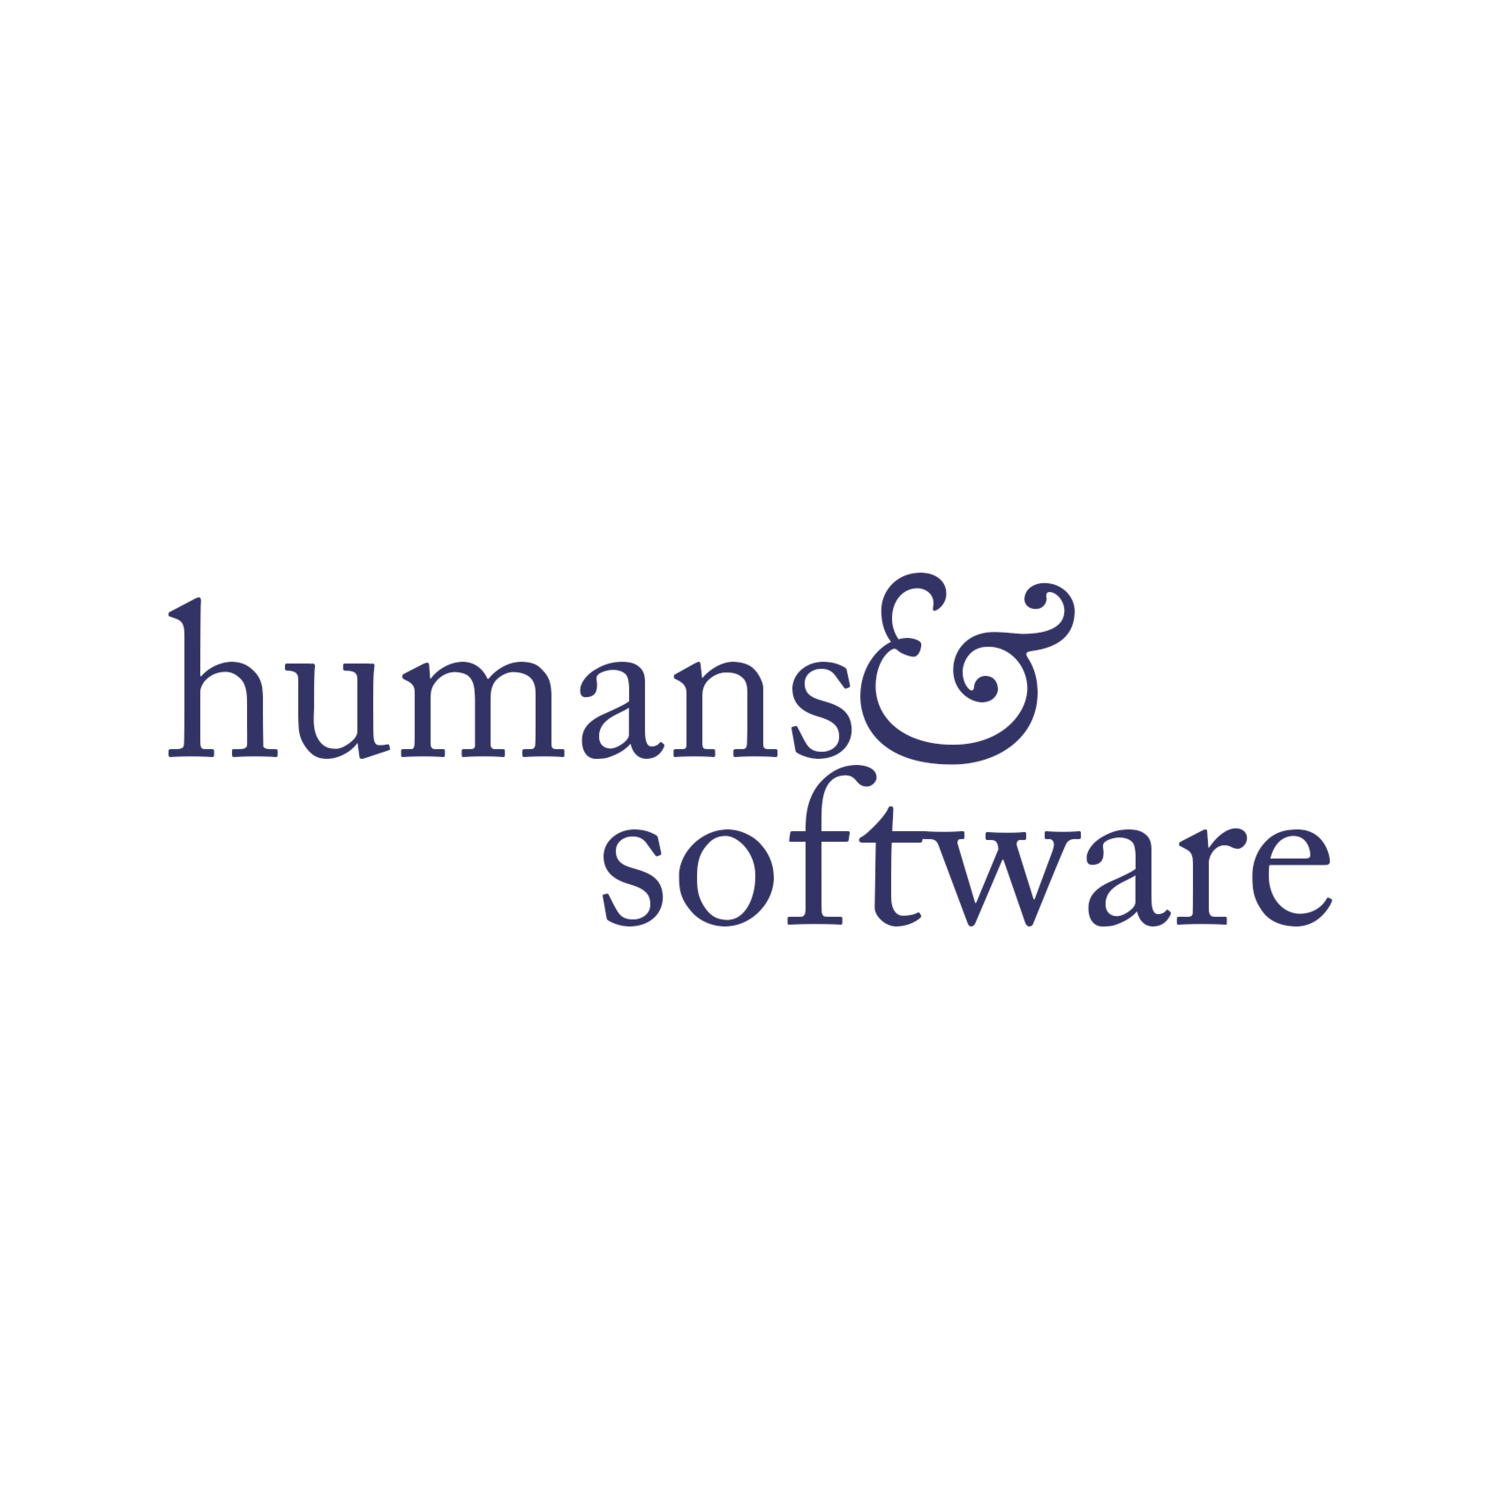 Humans & Software